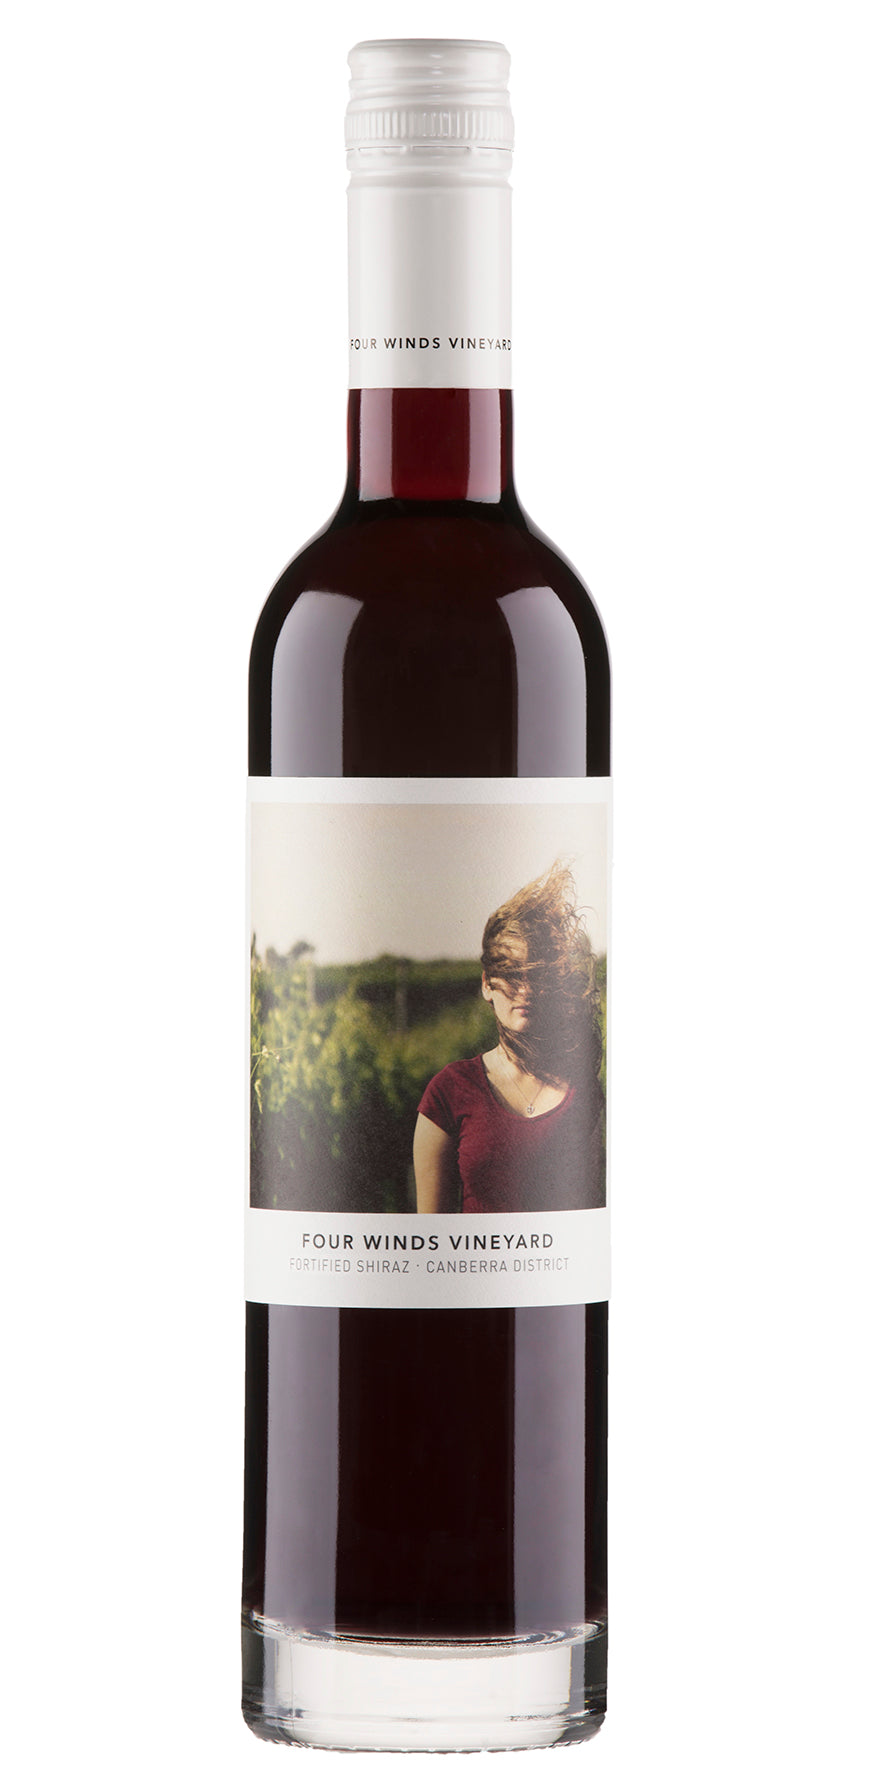 Four Winds Vineyard - 2018 Fortified Shiraz